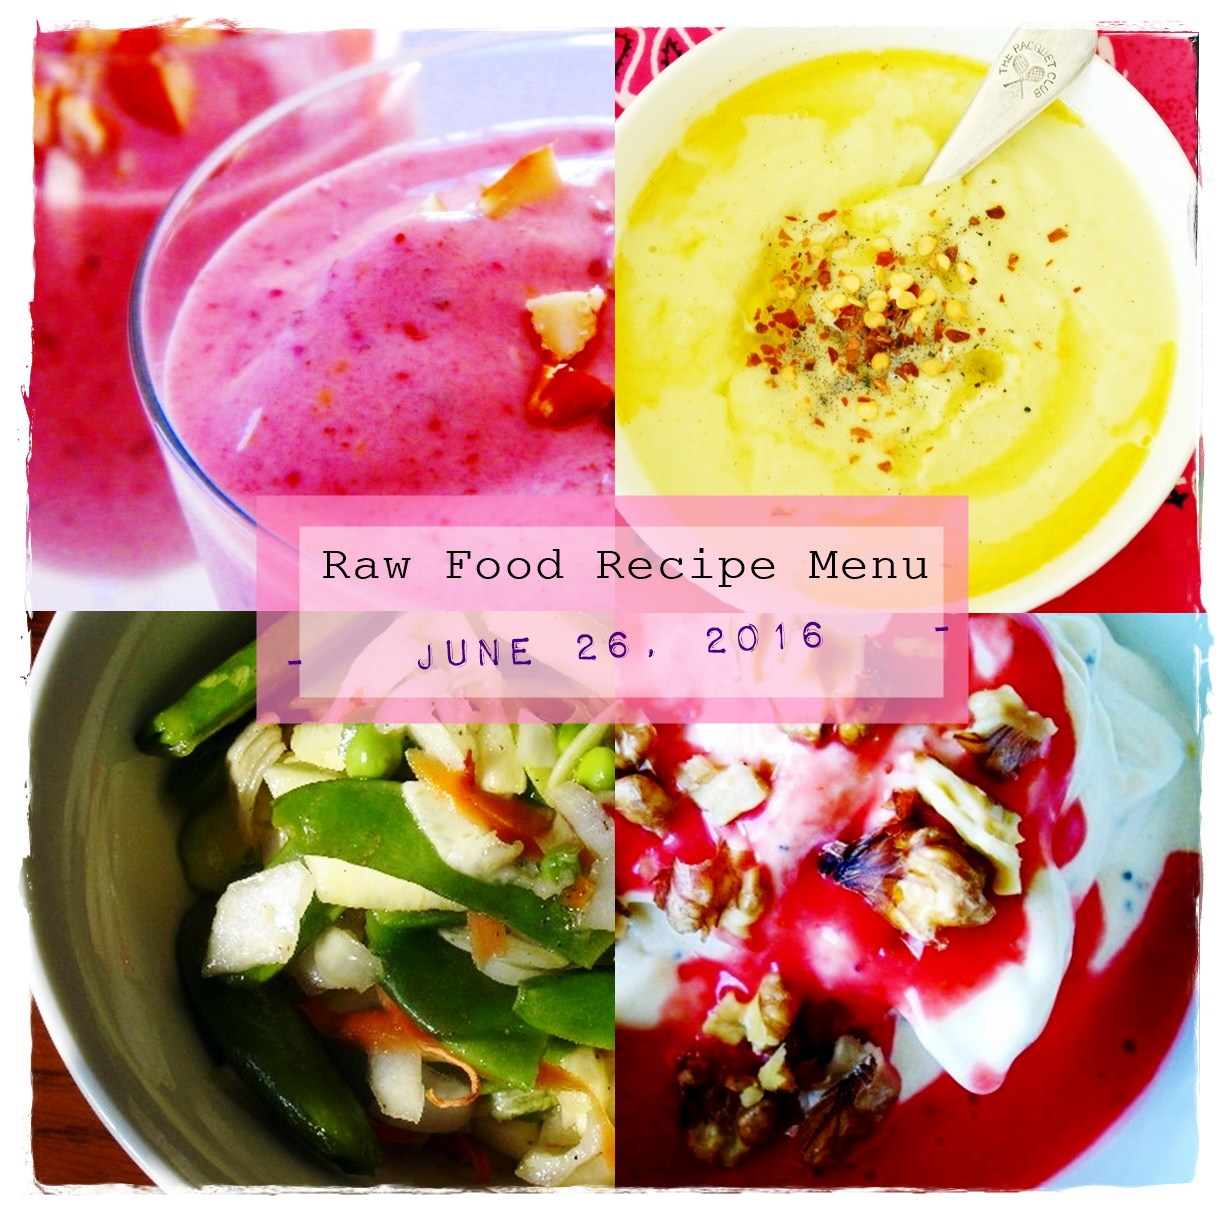 Raw on 10 a day or less raw food recipe menu june 26th 2016 forumfinder Images